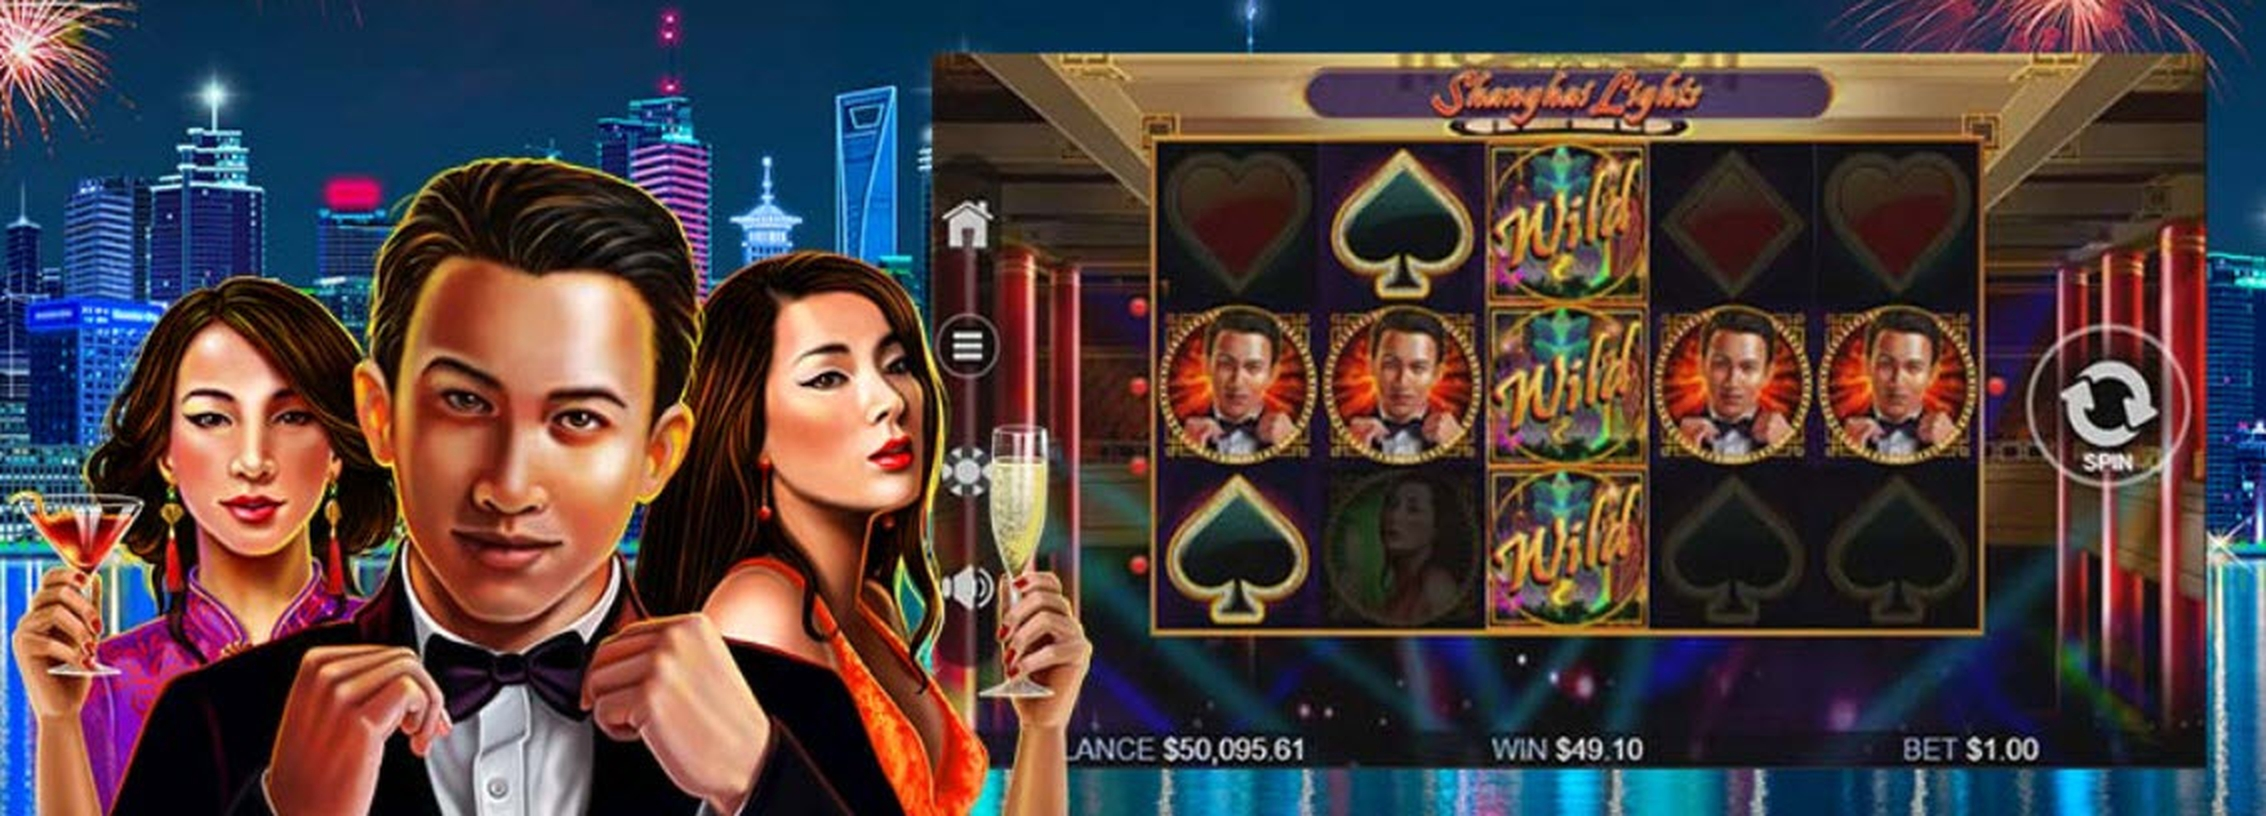 The Shanghai Lights Online Slot Demo Game by Real Time Gaming